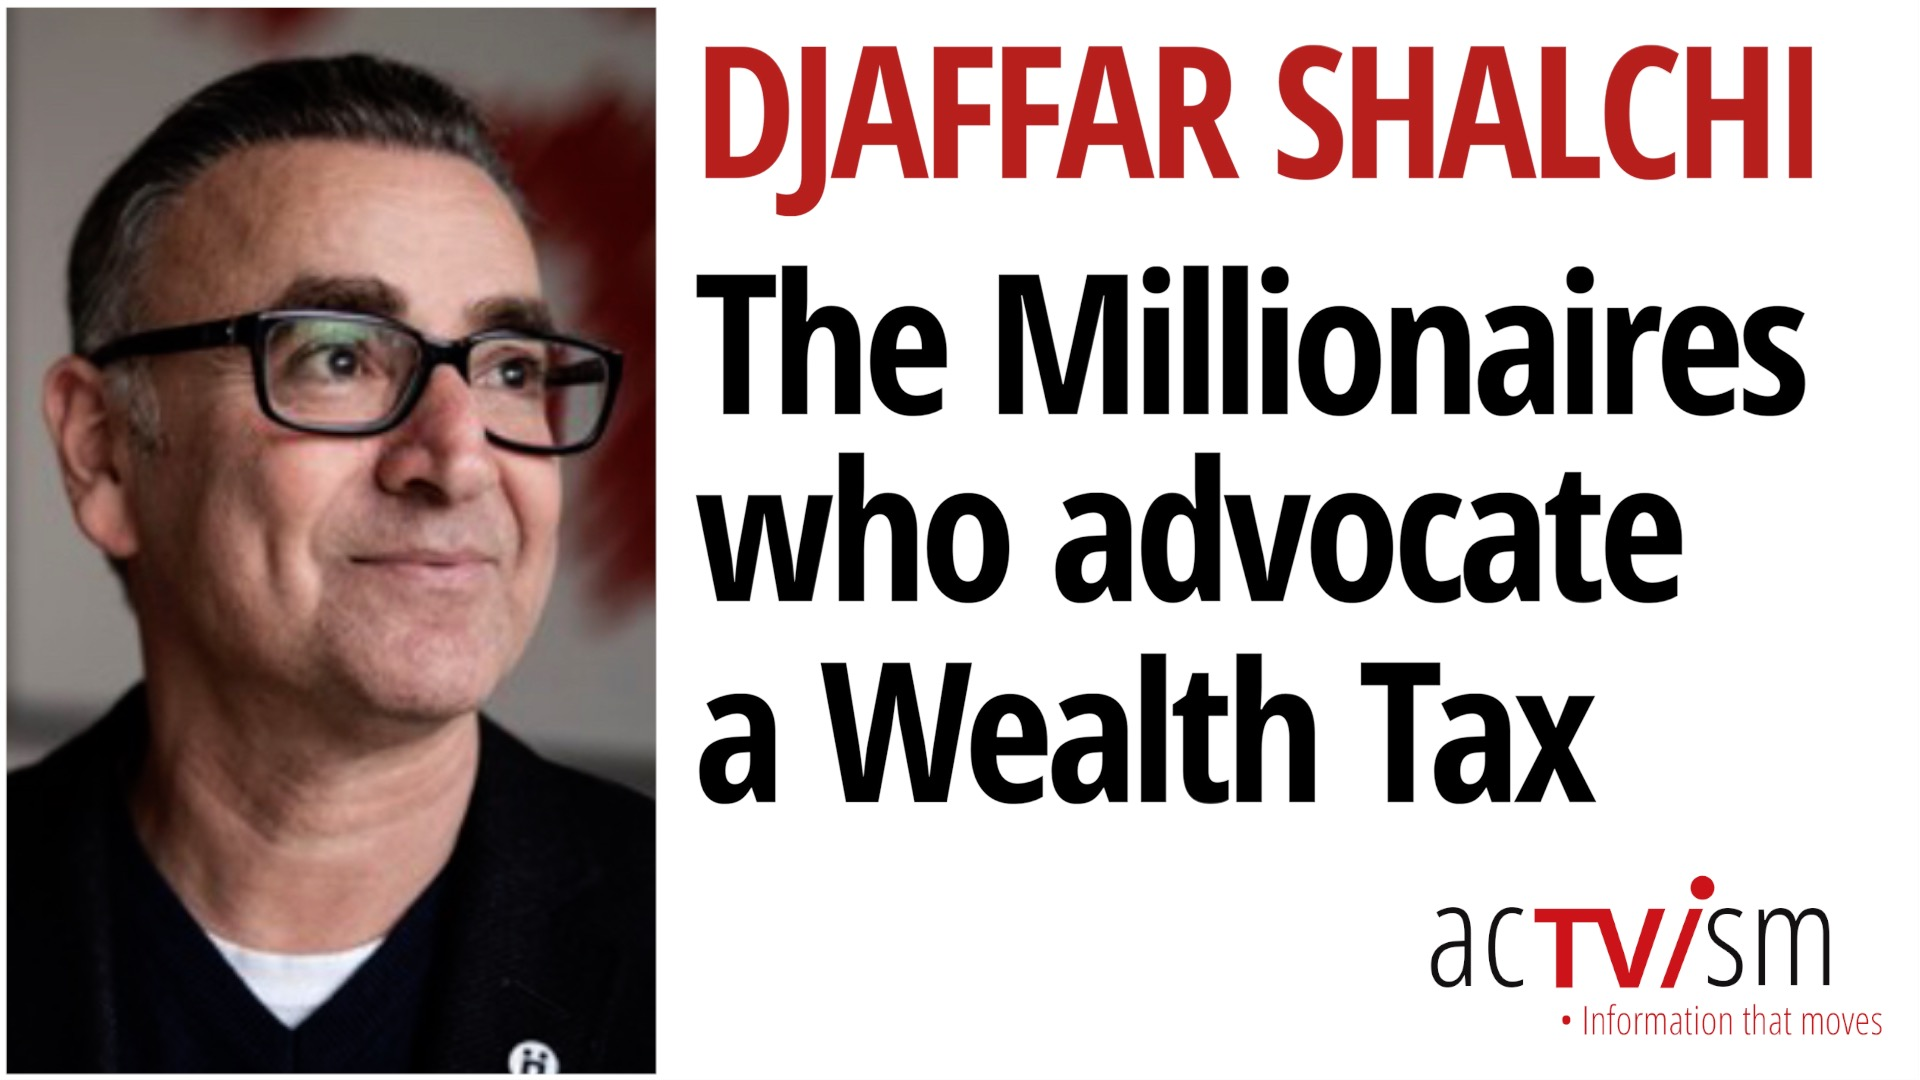 Hundreds of millionaires advocating for a wealth tax